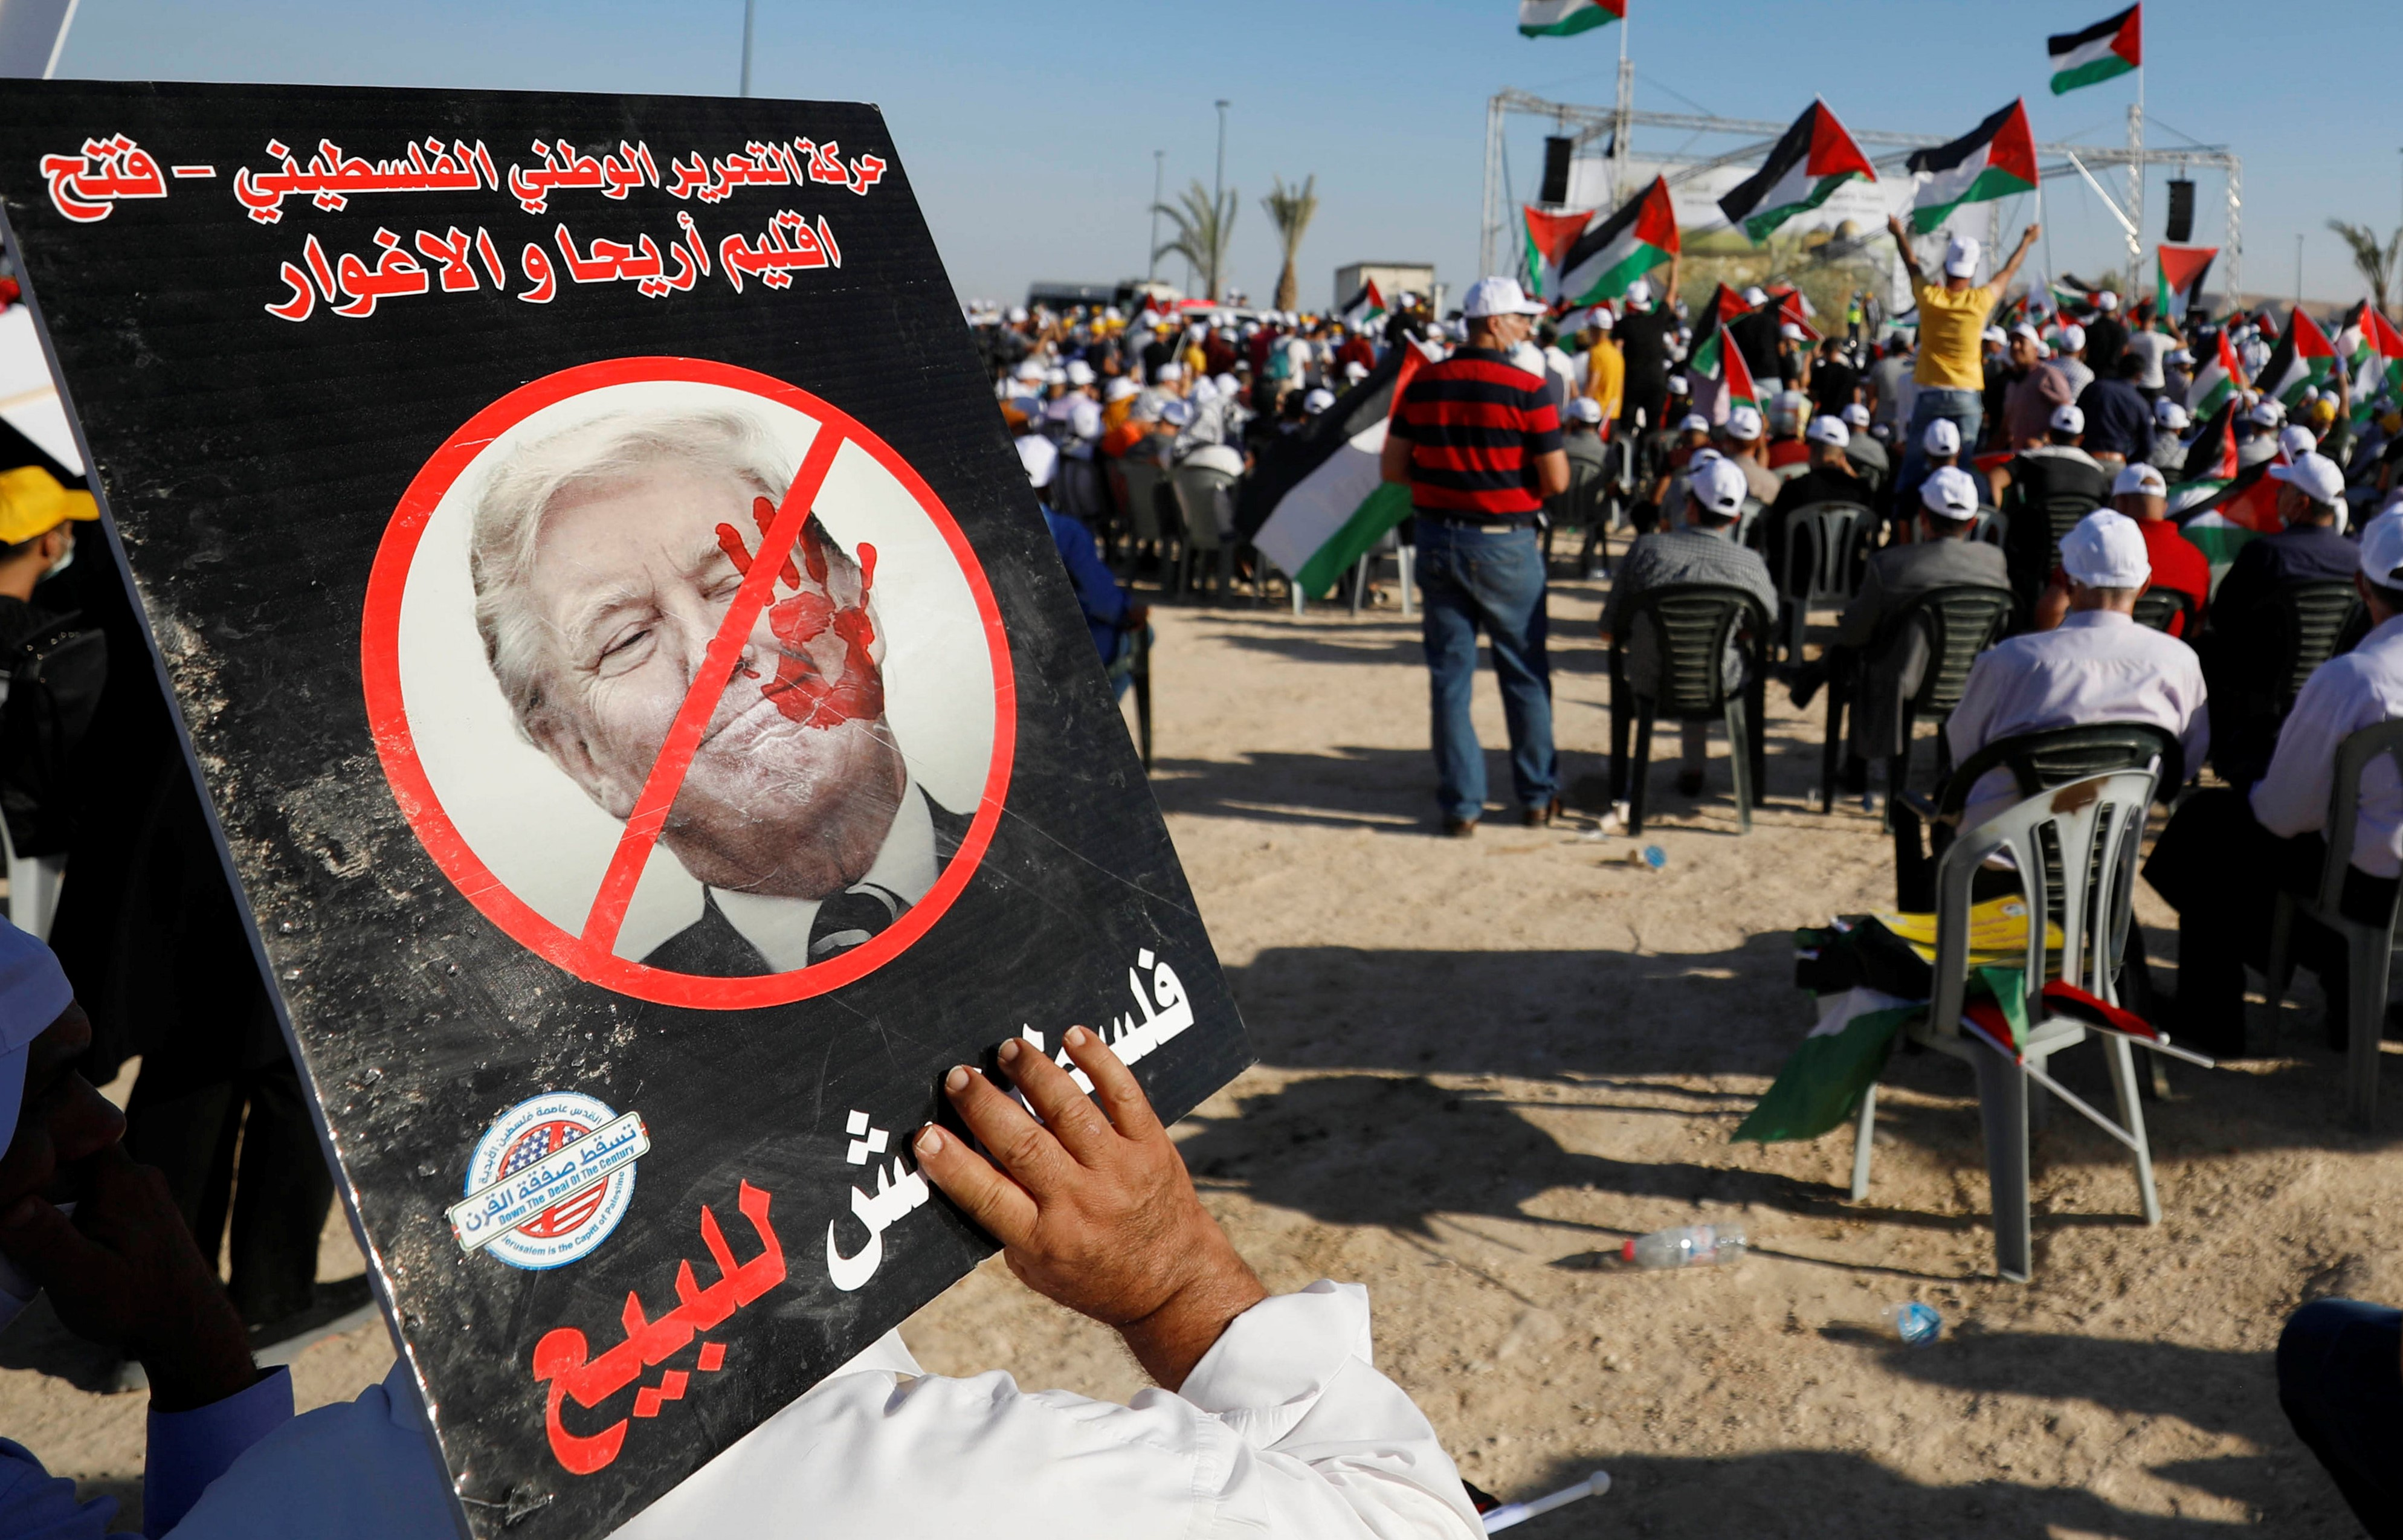 A demonstrator holds an anti-U.S. President Donald Trump placard during a rally, organised by the Palestinian Liberation Organization (PLO), to protest against Israel's plan to annex parts of the occupied West Bank, in Jericho June 22